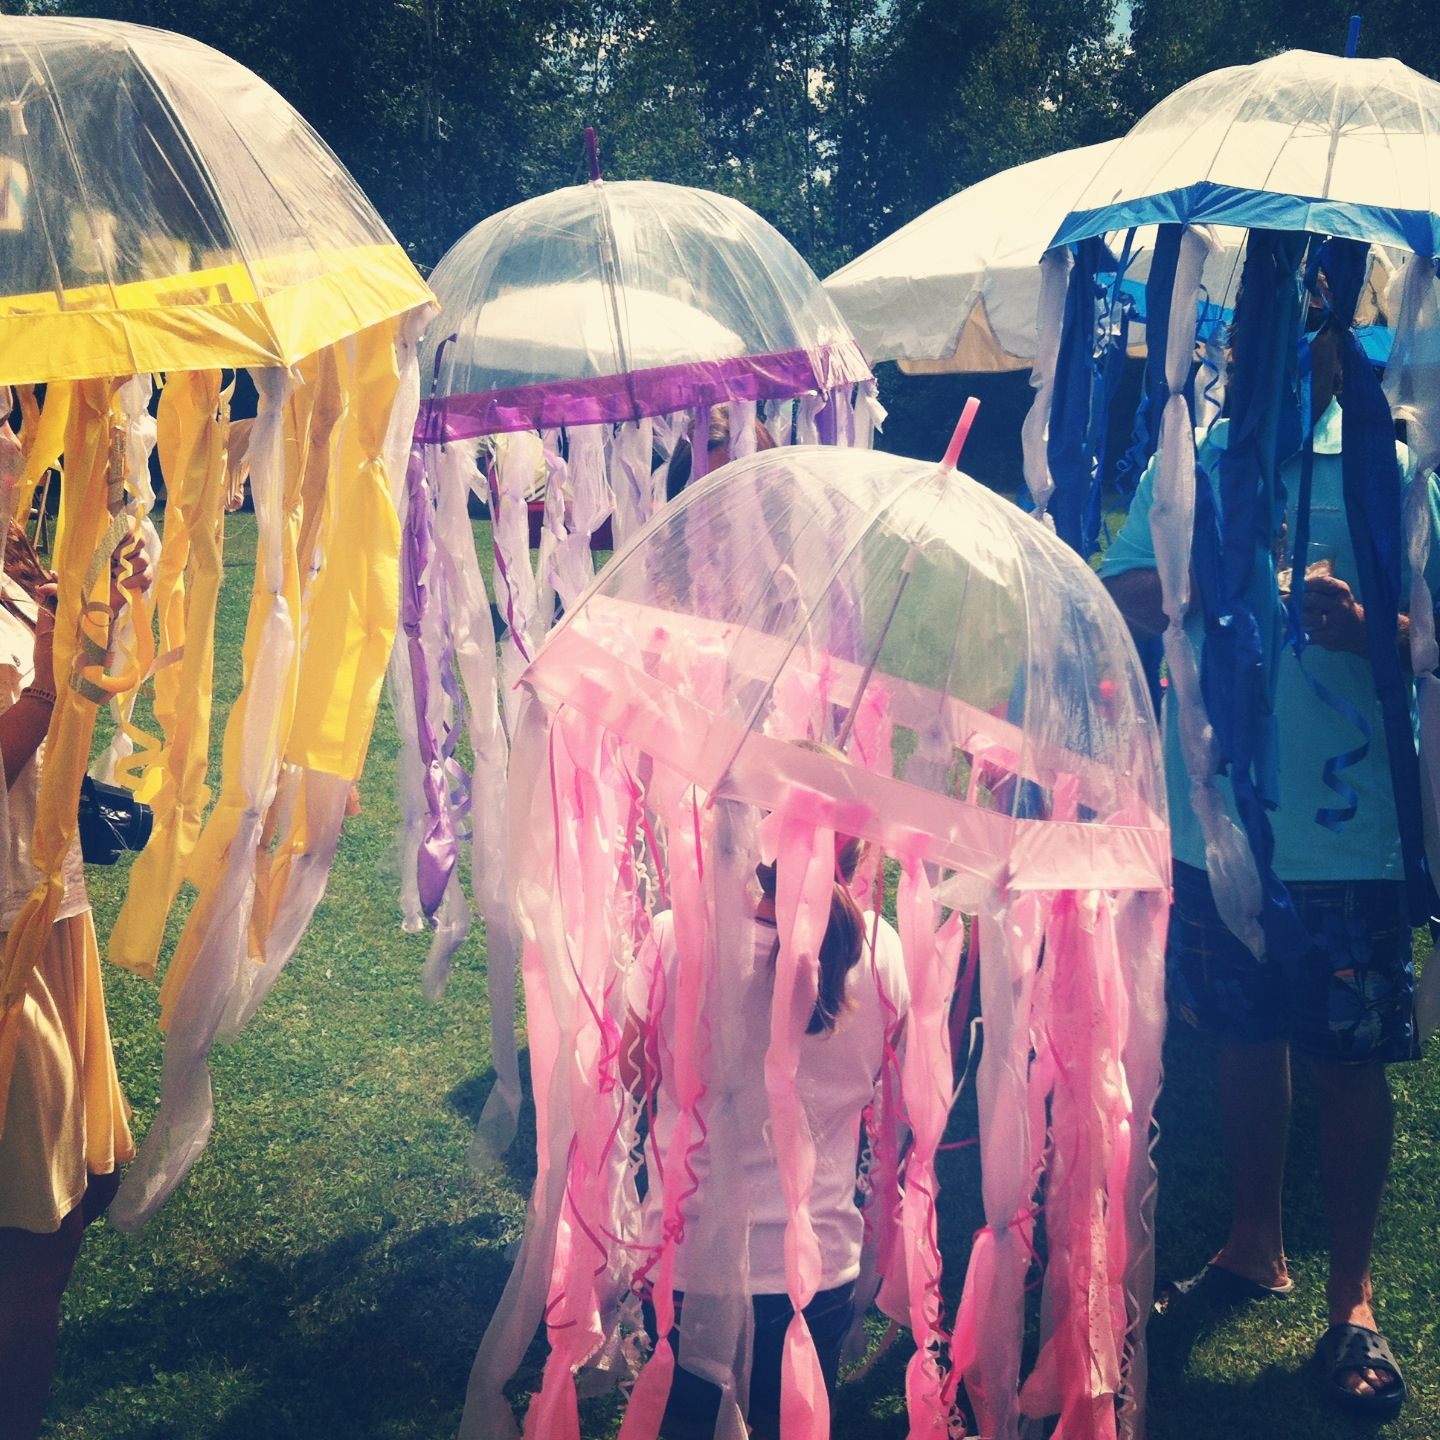 Group jellyfish costume @Liz Flowers @Lily Flowers & Group jellyfish costume @Liz Flowers @Lily Flowers | ??? ...